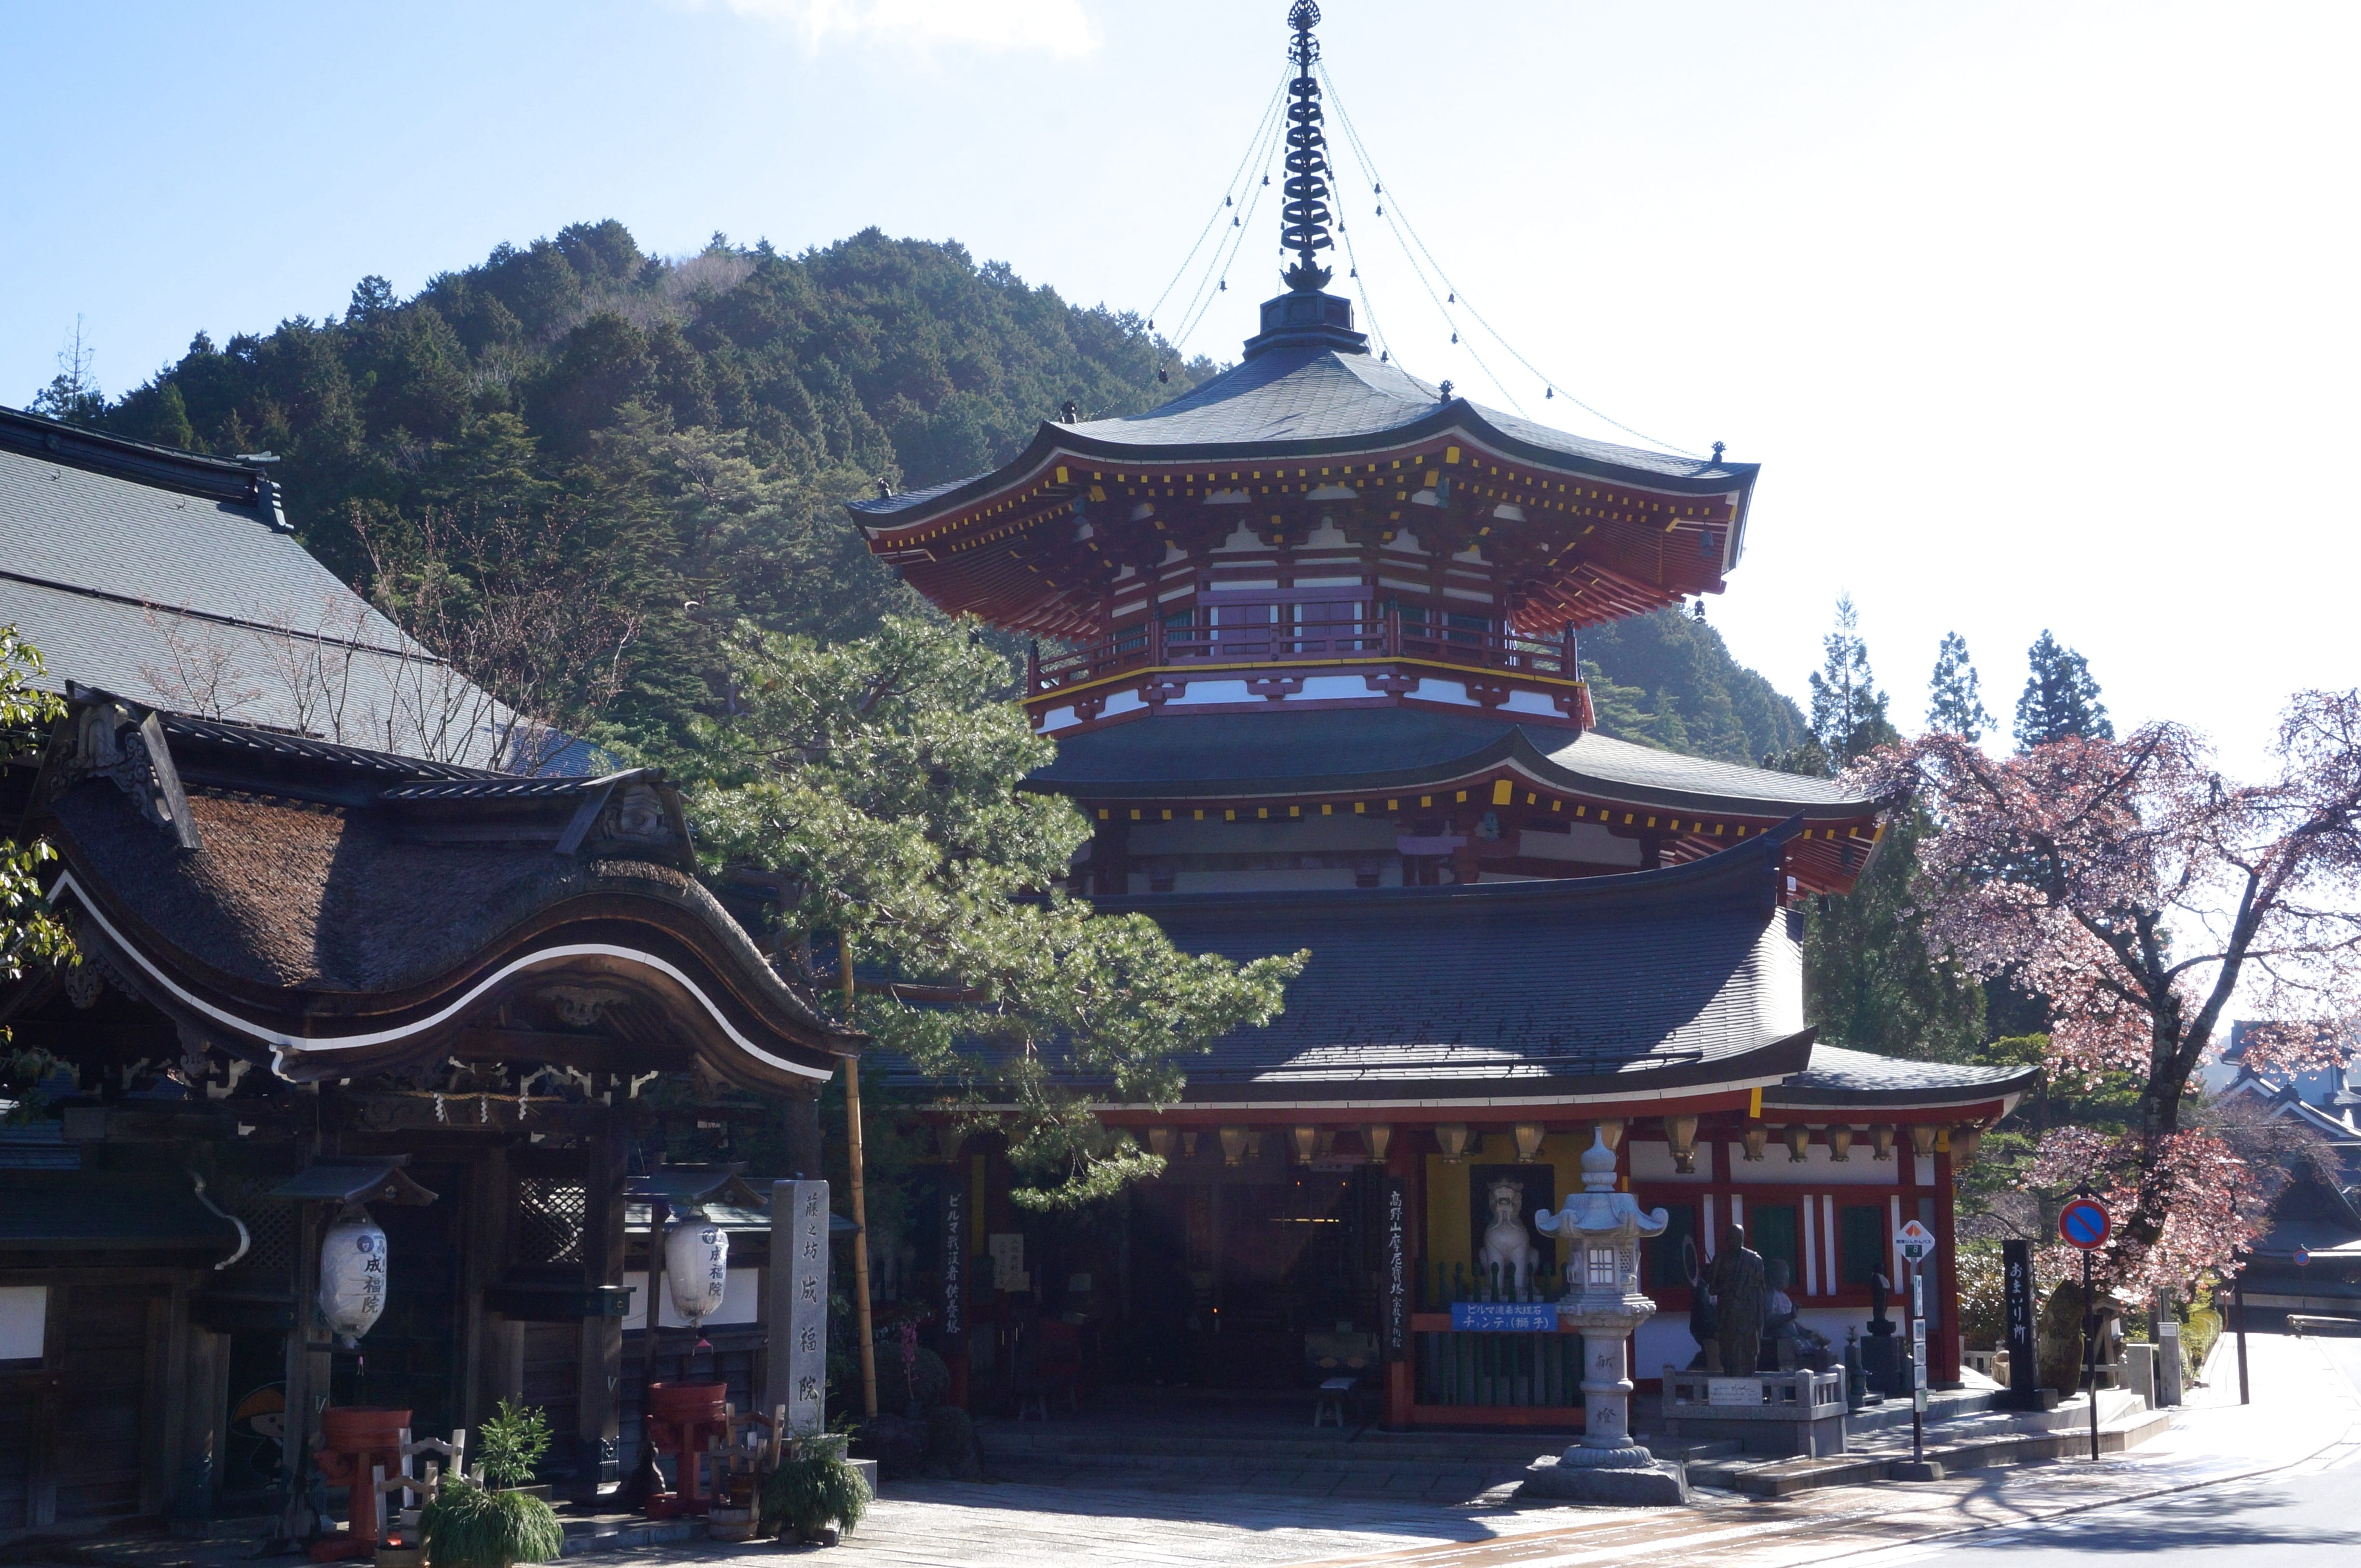 temple bouddhiste koyasan au japon